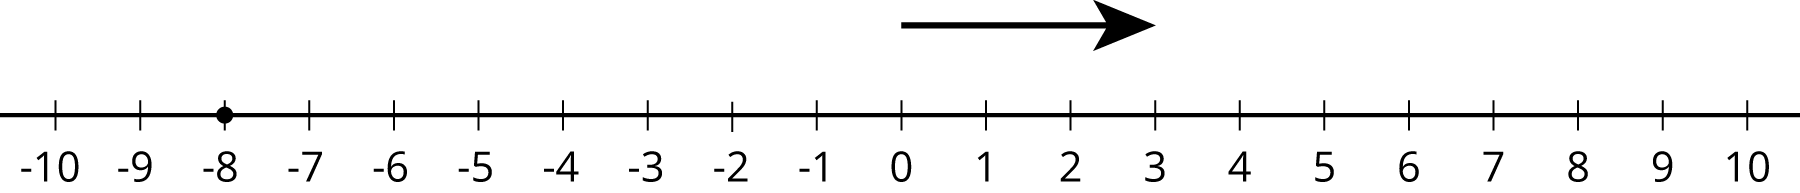 A number line with the numbers negative 10 through 10 indicated. Above the number line an arrow pointing right starts at 0 and ends at 3. A solid dot is indicated at negative 8.